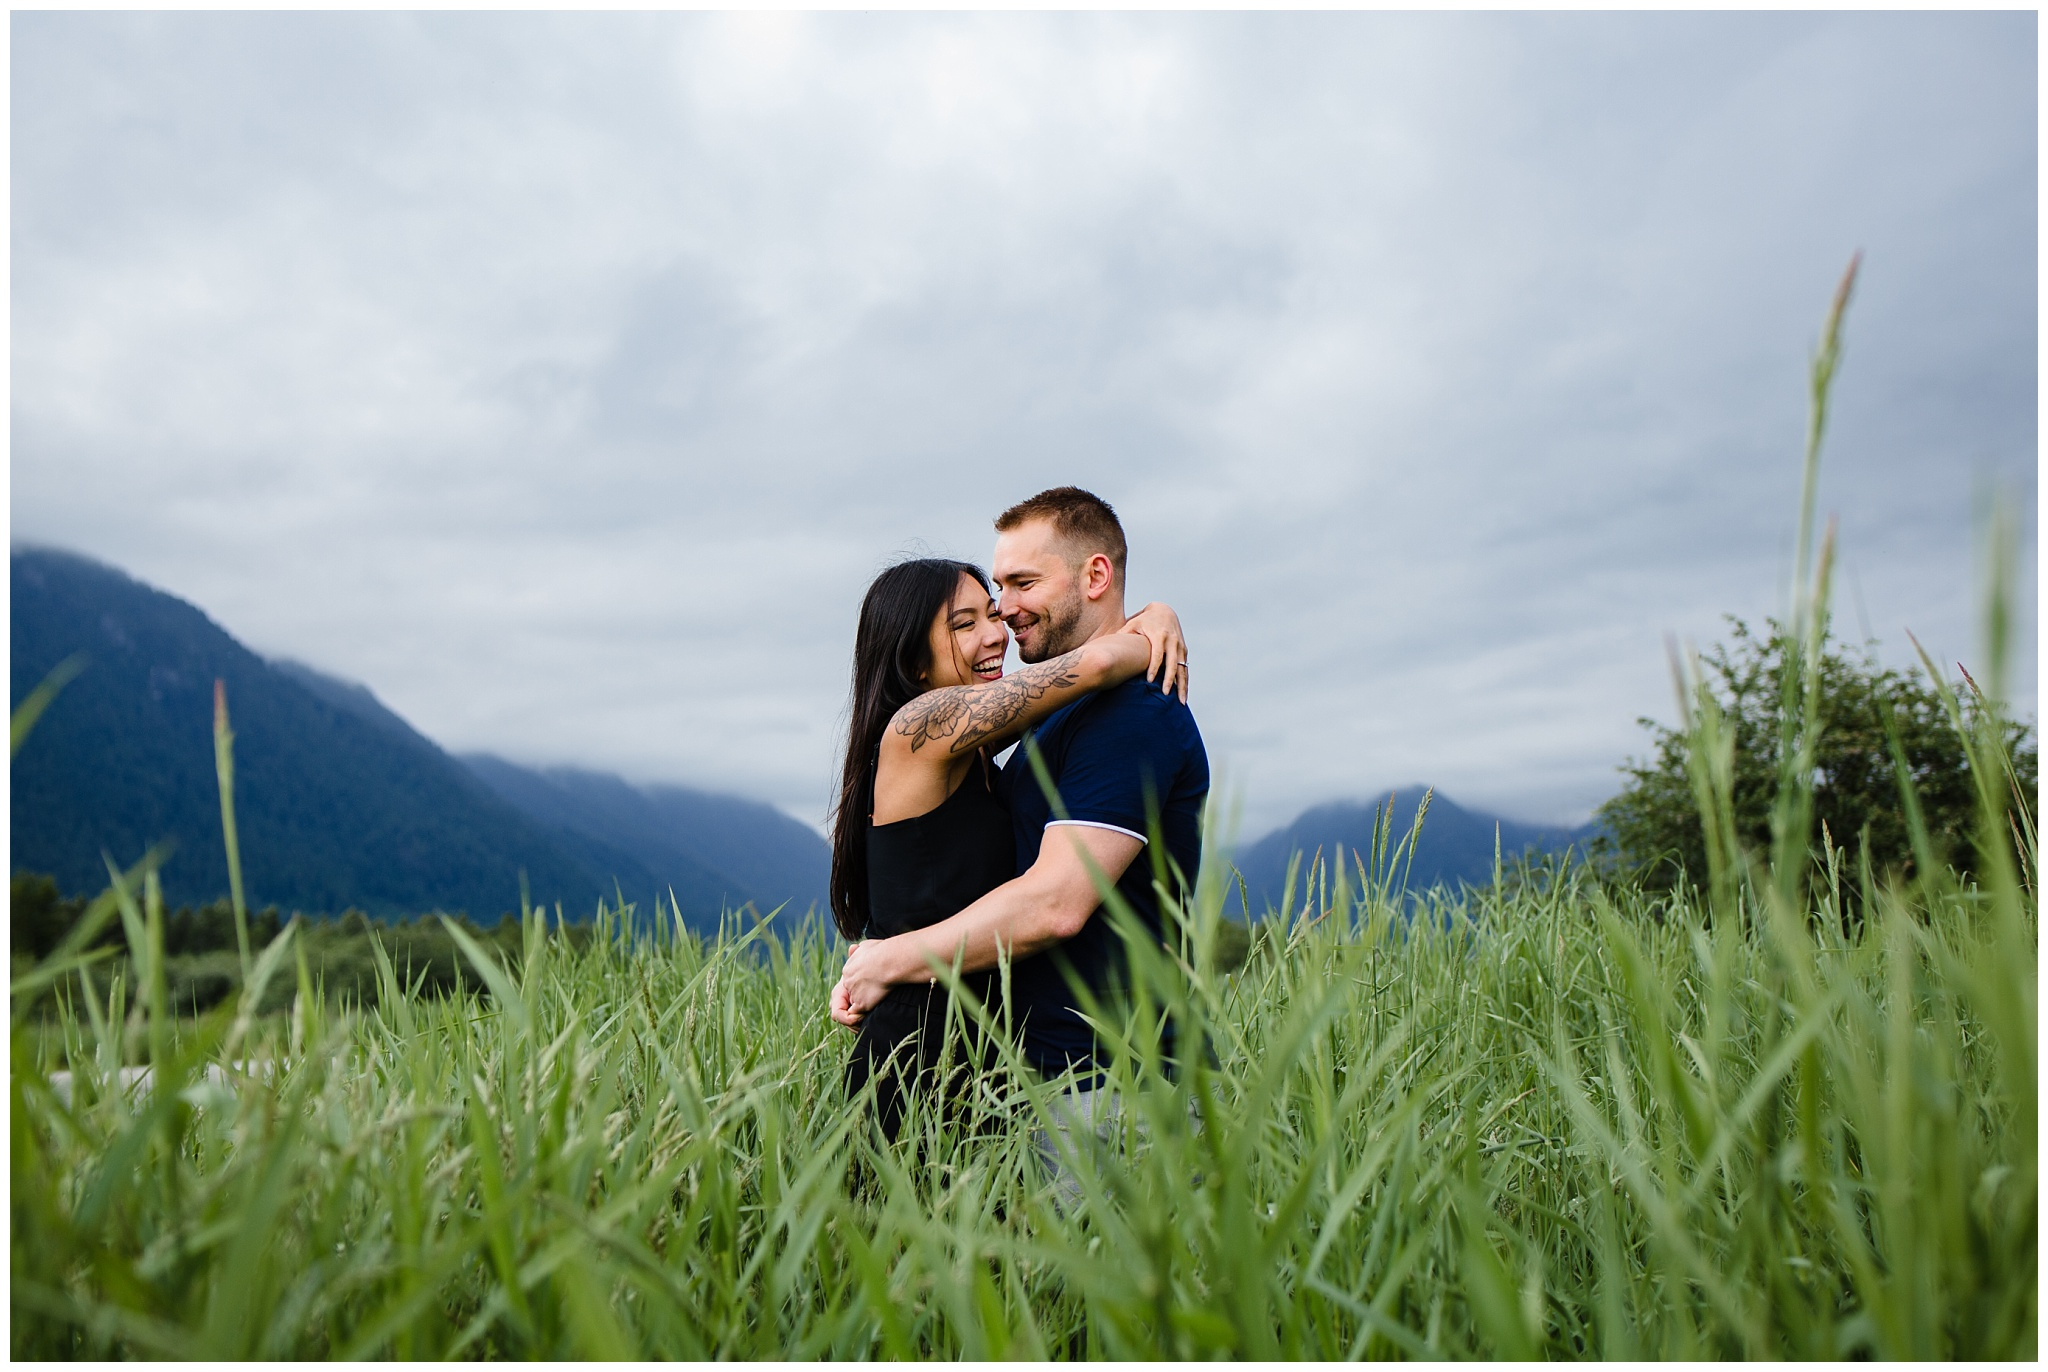 Pitt Lake Engagement Photos Maple Ridge Candid Fun Romantic Couples Photography_0019.jpg